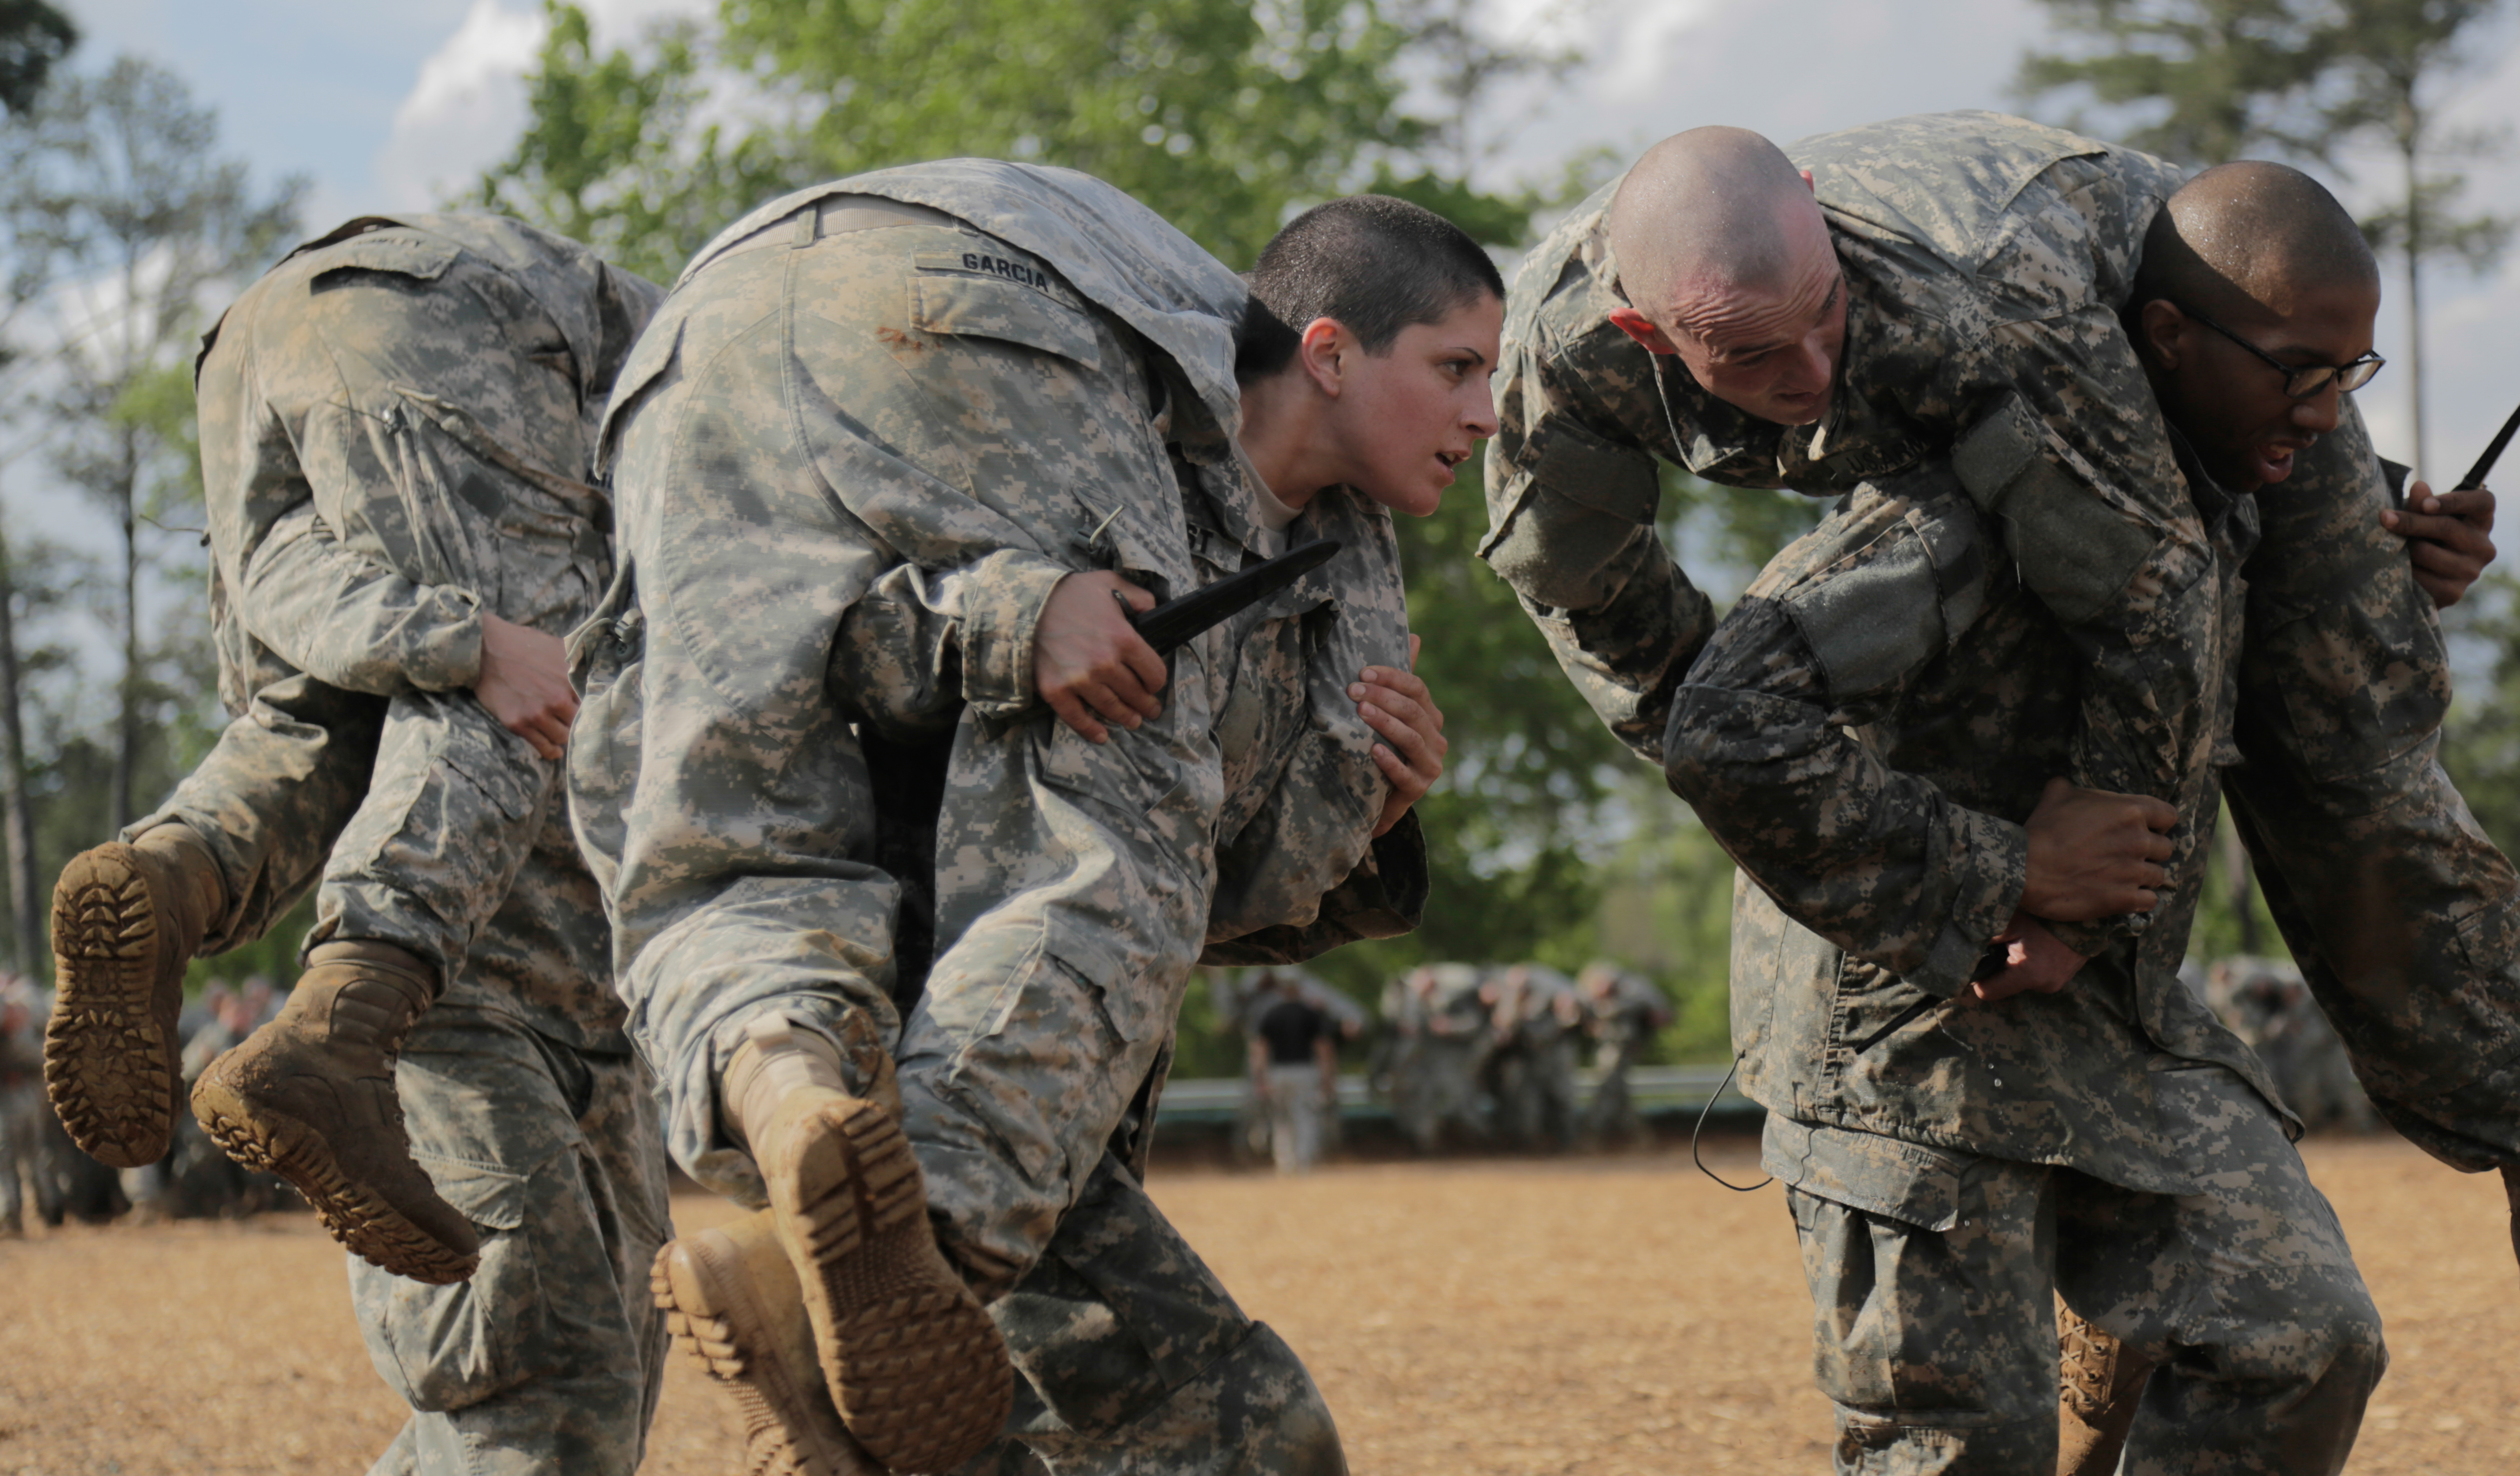 single women in ranger Many people have weighed in recently on the controversy surrounding the circumstances of the first two female graduates of ranger school from army ranger veterans to members of congress, a.